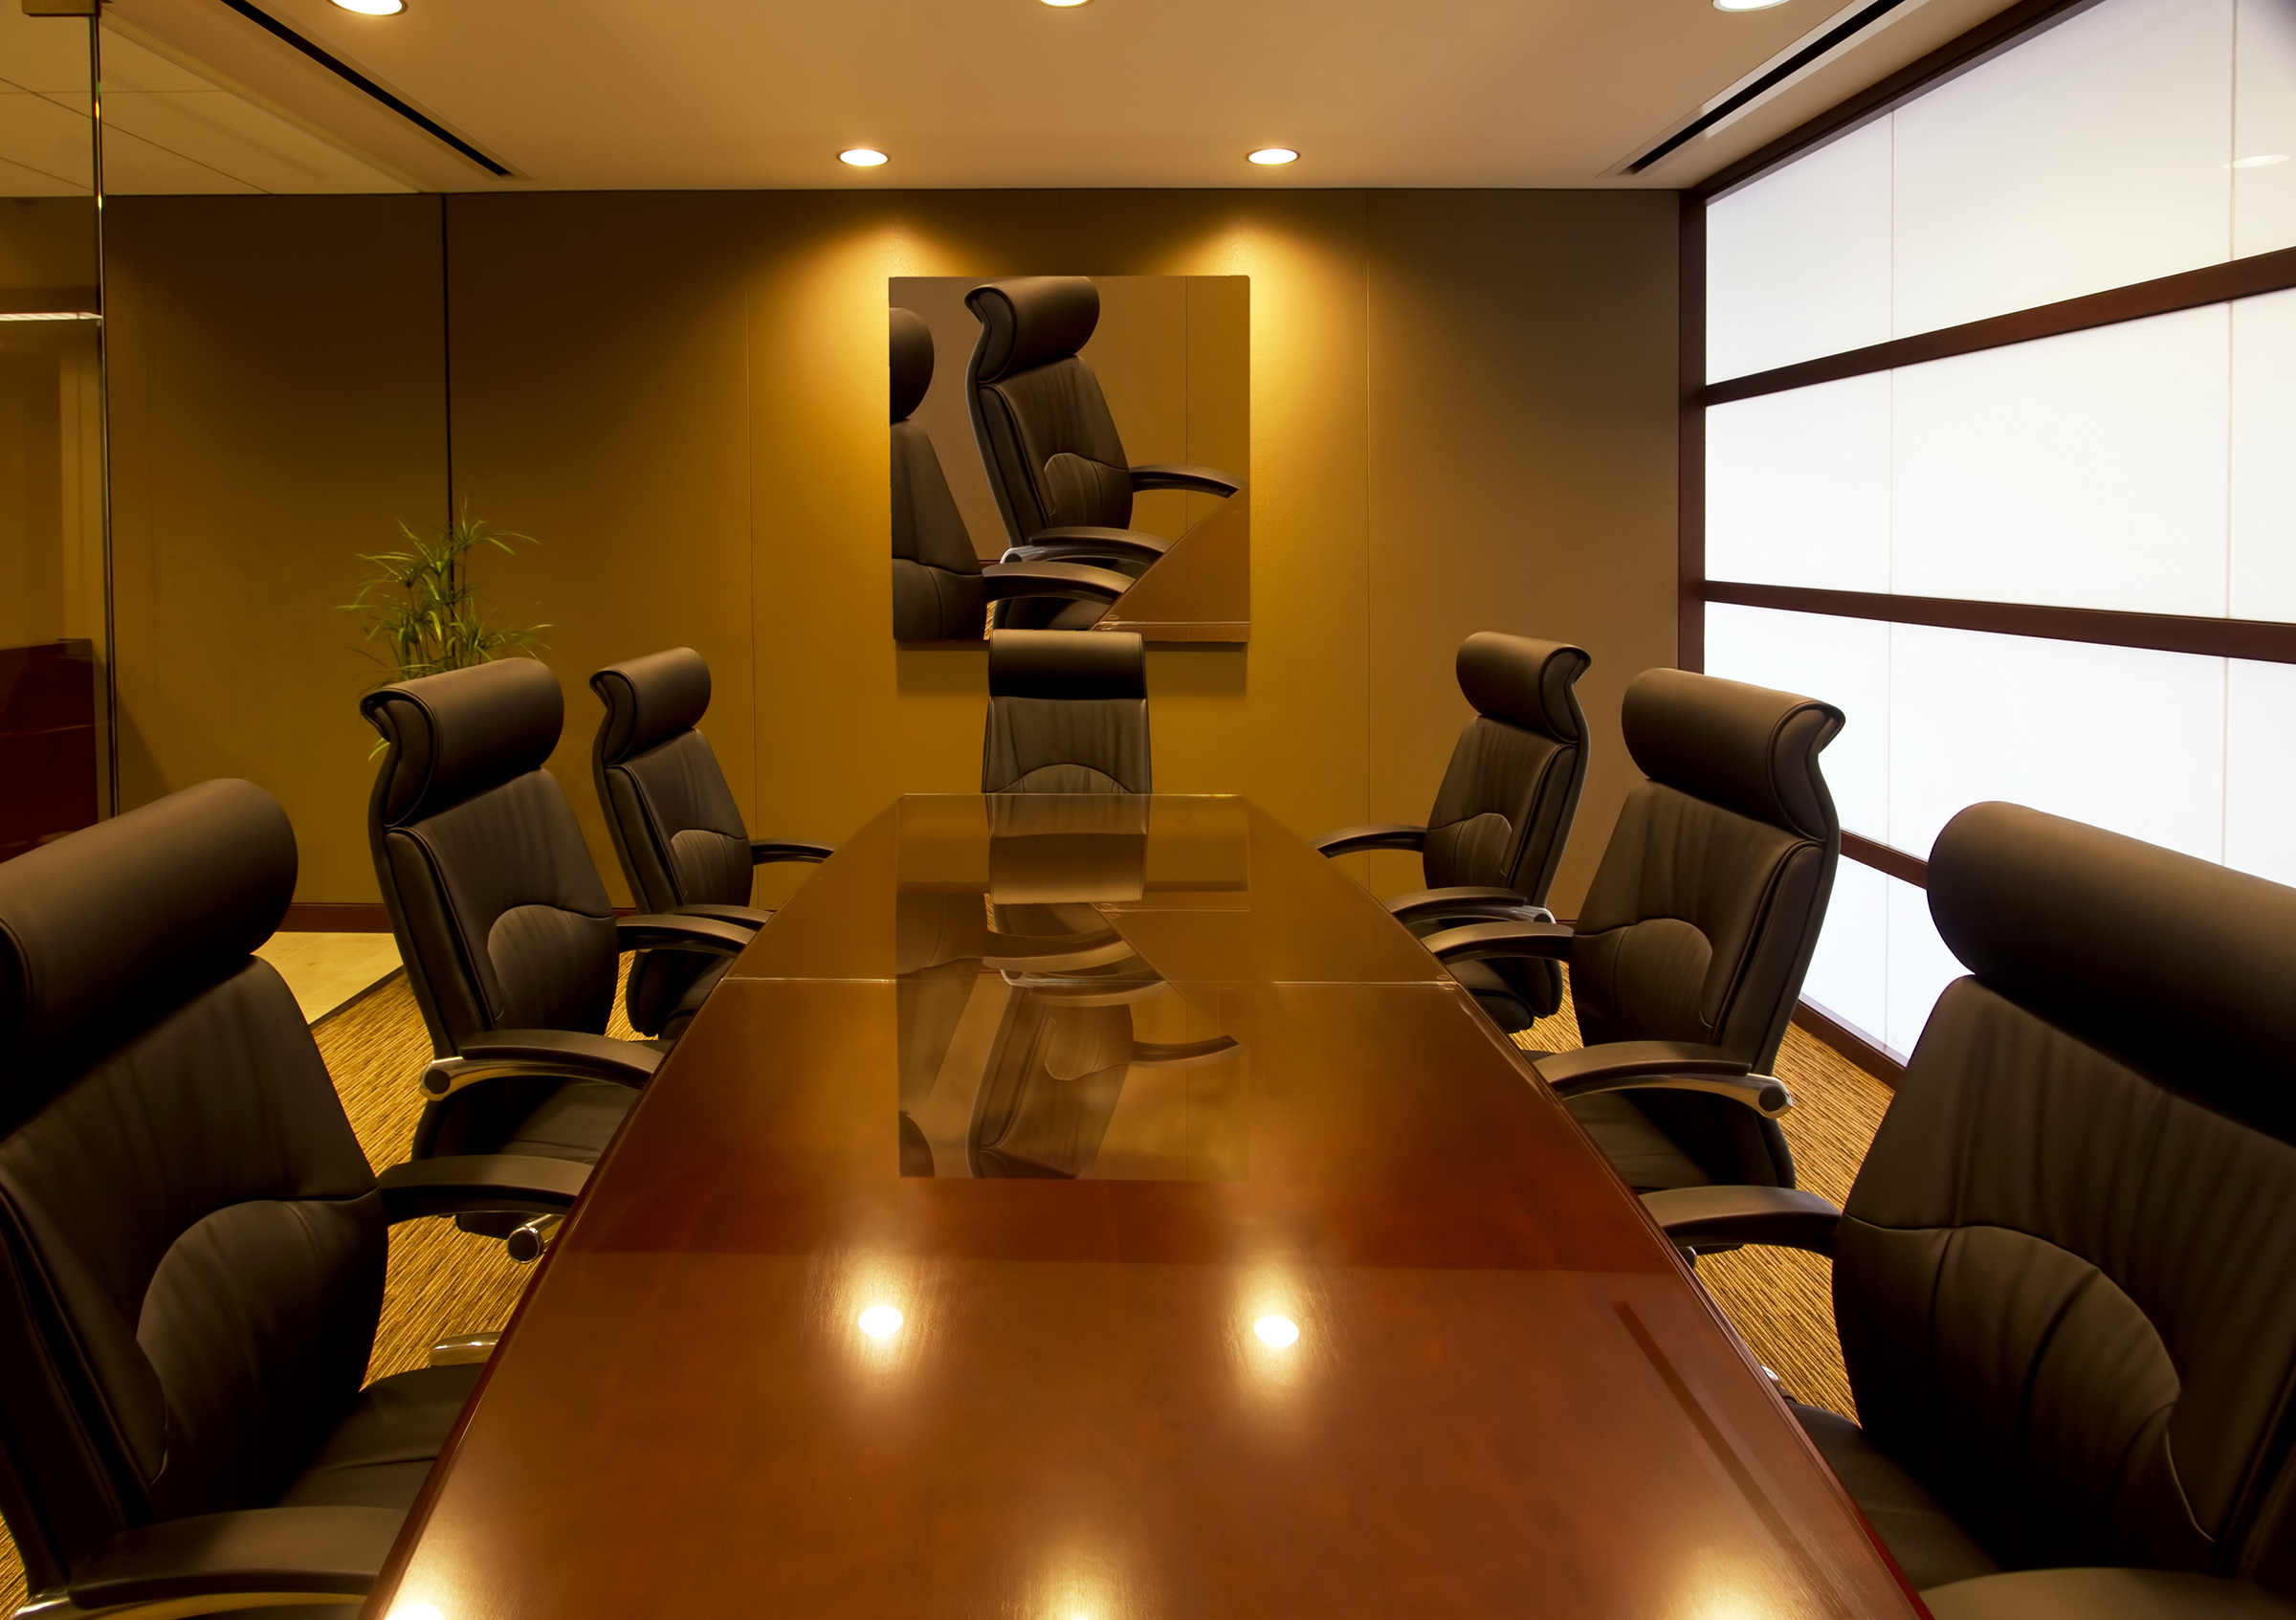 Room conference table 55476